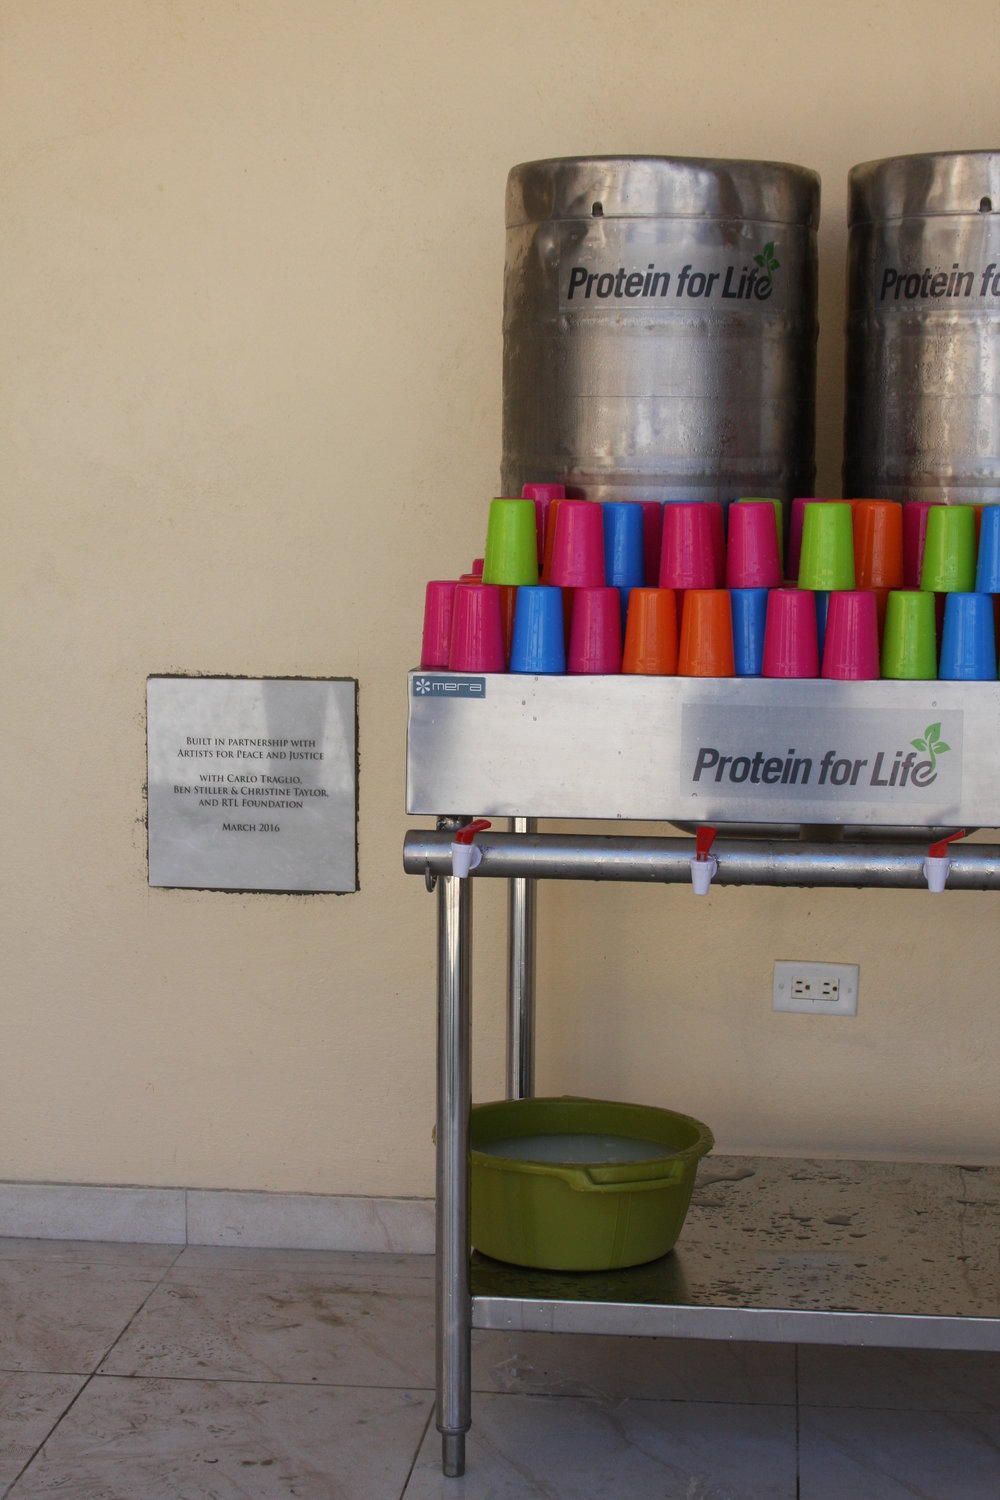 Food safe, waste-less, dispensing system